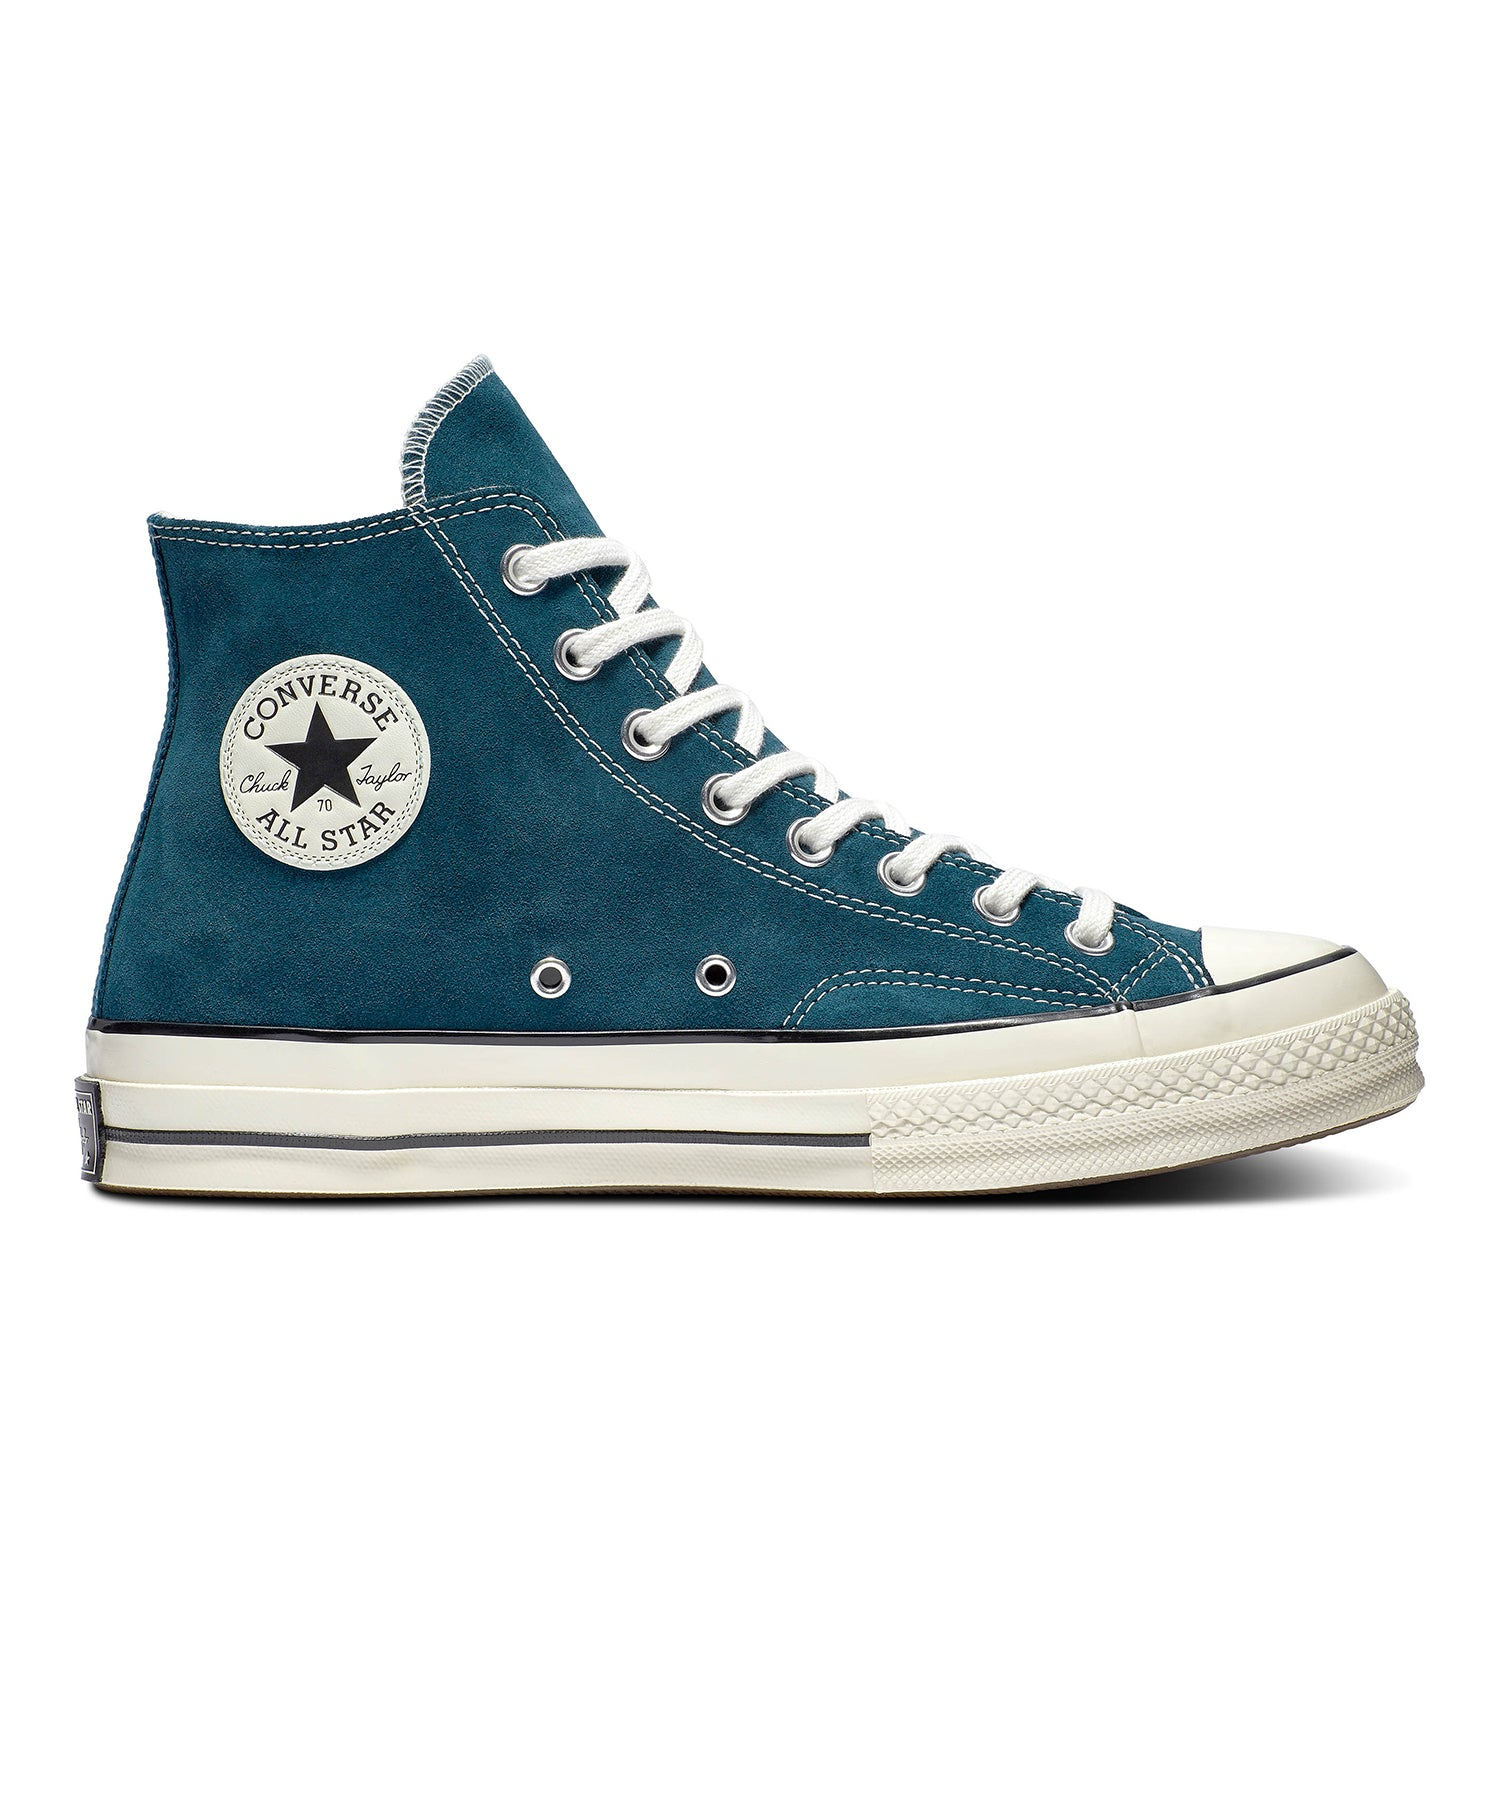 Converse Suede Chuck 70 Hi in Midnight Turquoise